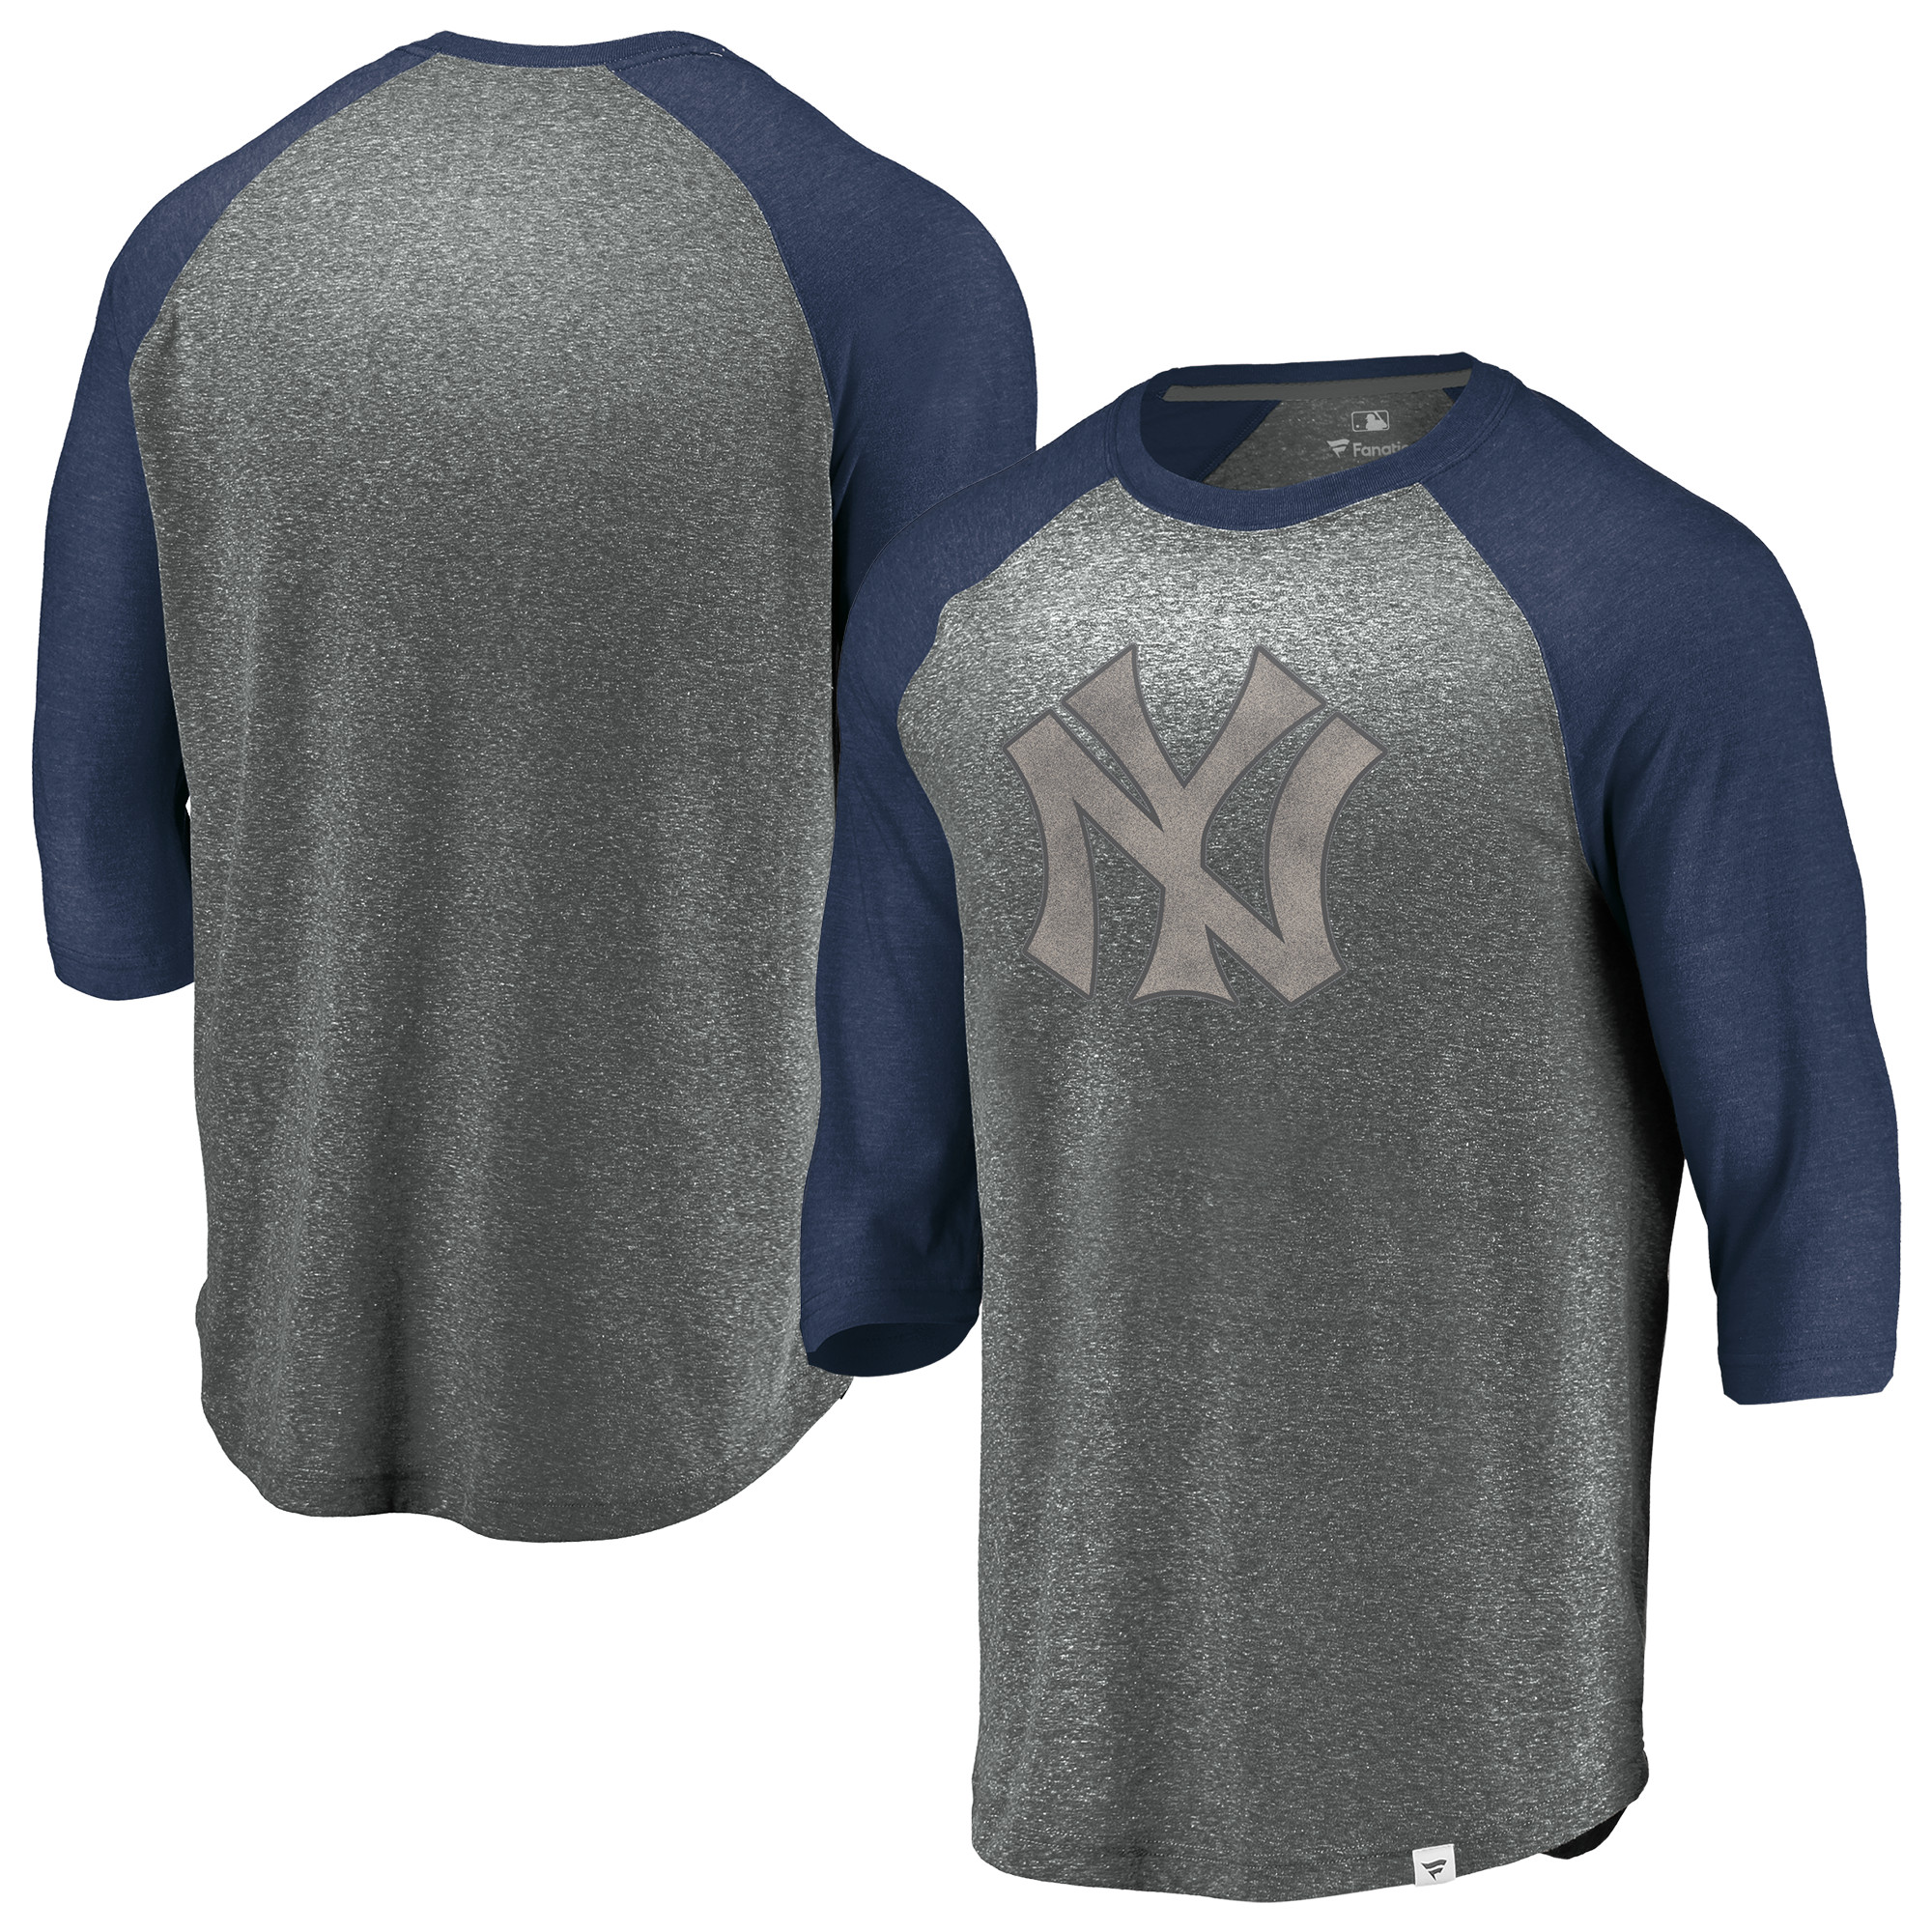 New York Yankees Fanatics Branded Cooperstown Collection Massive Devotees Tri-Blend Raglan 3/4-Sleeve T-Shirt - Heathered Gray/Navy